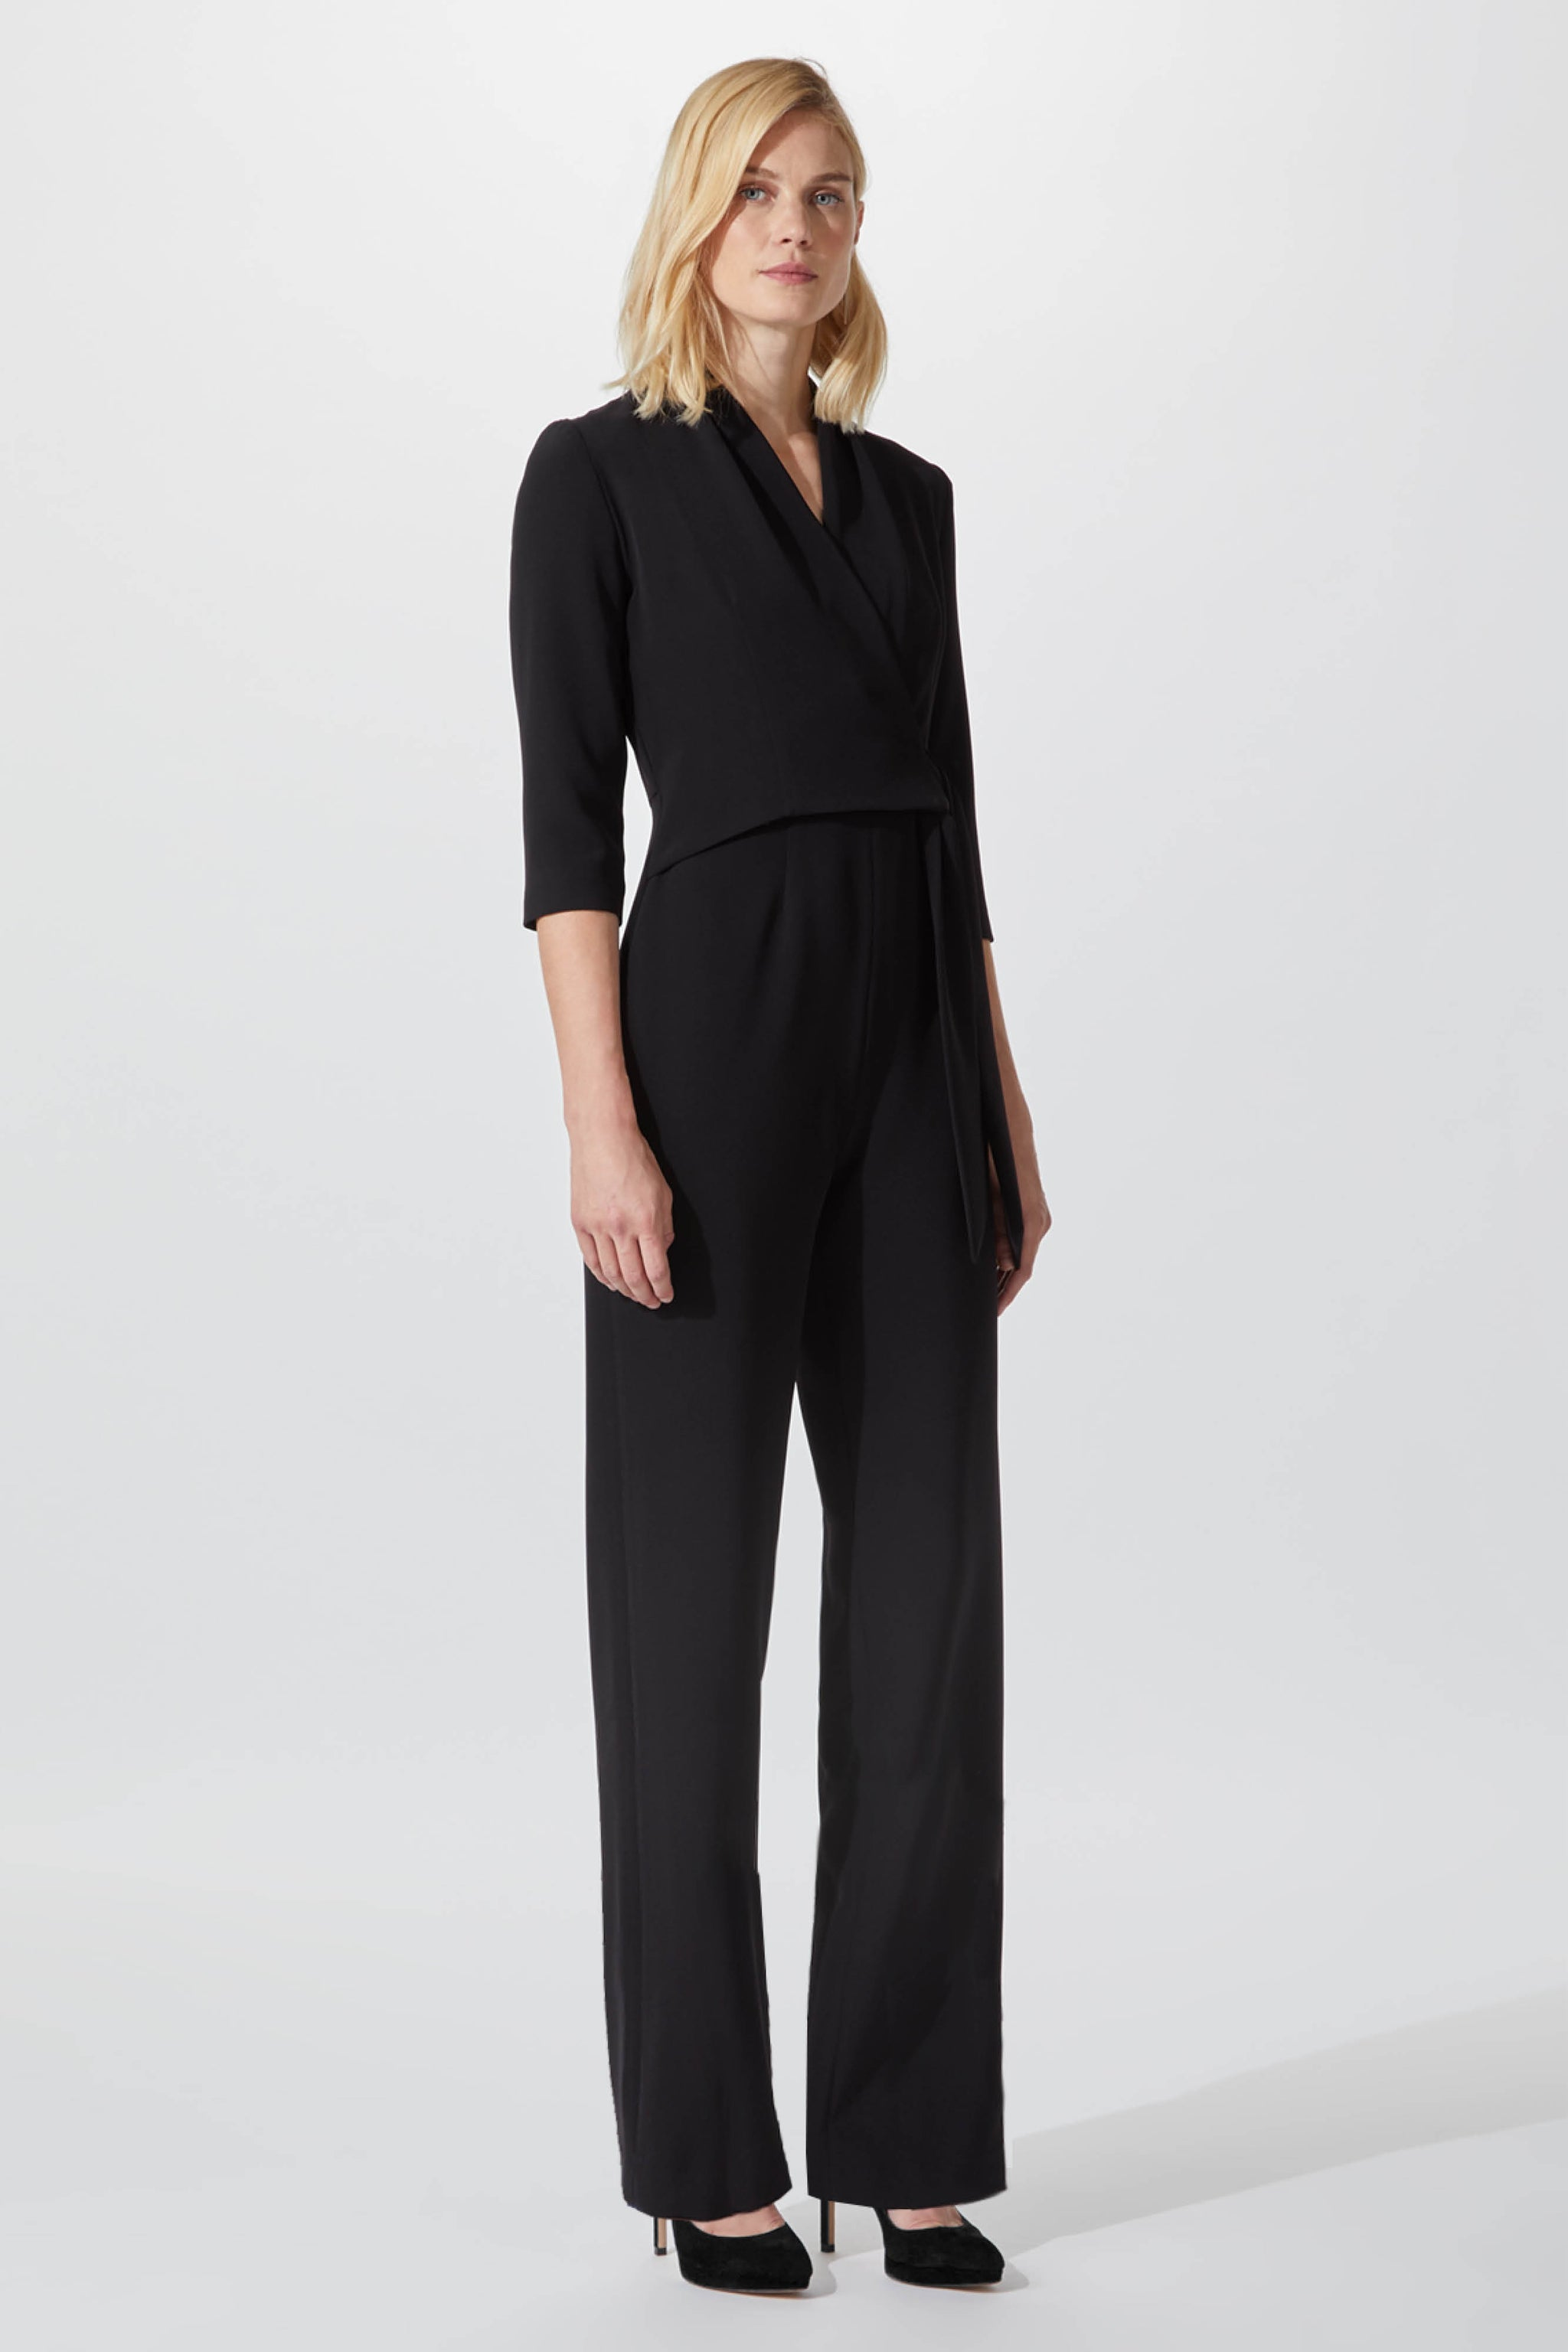 Cooper Black Jumpsuit